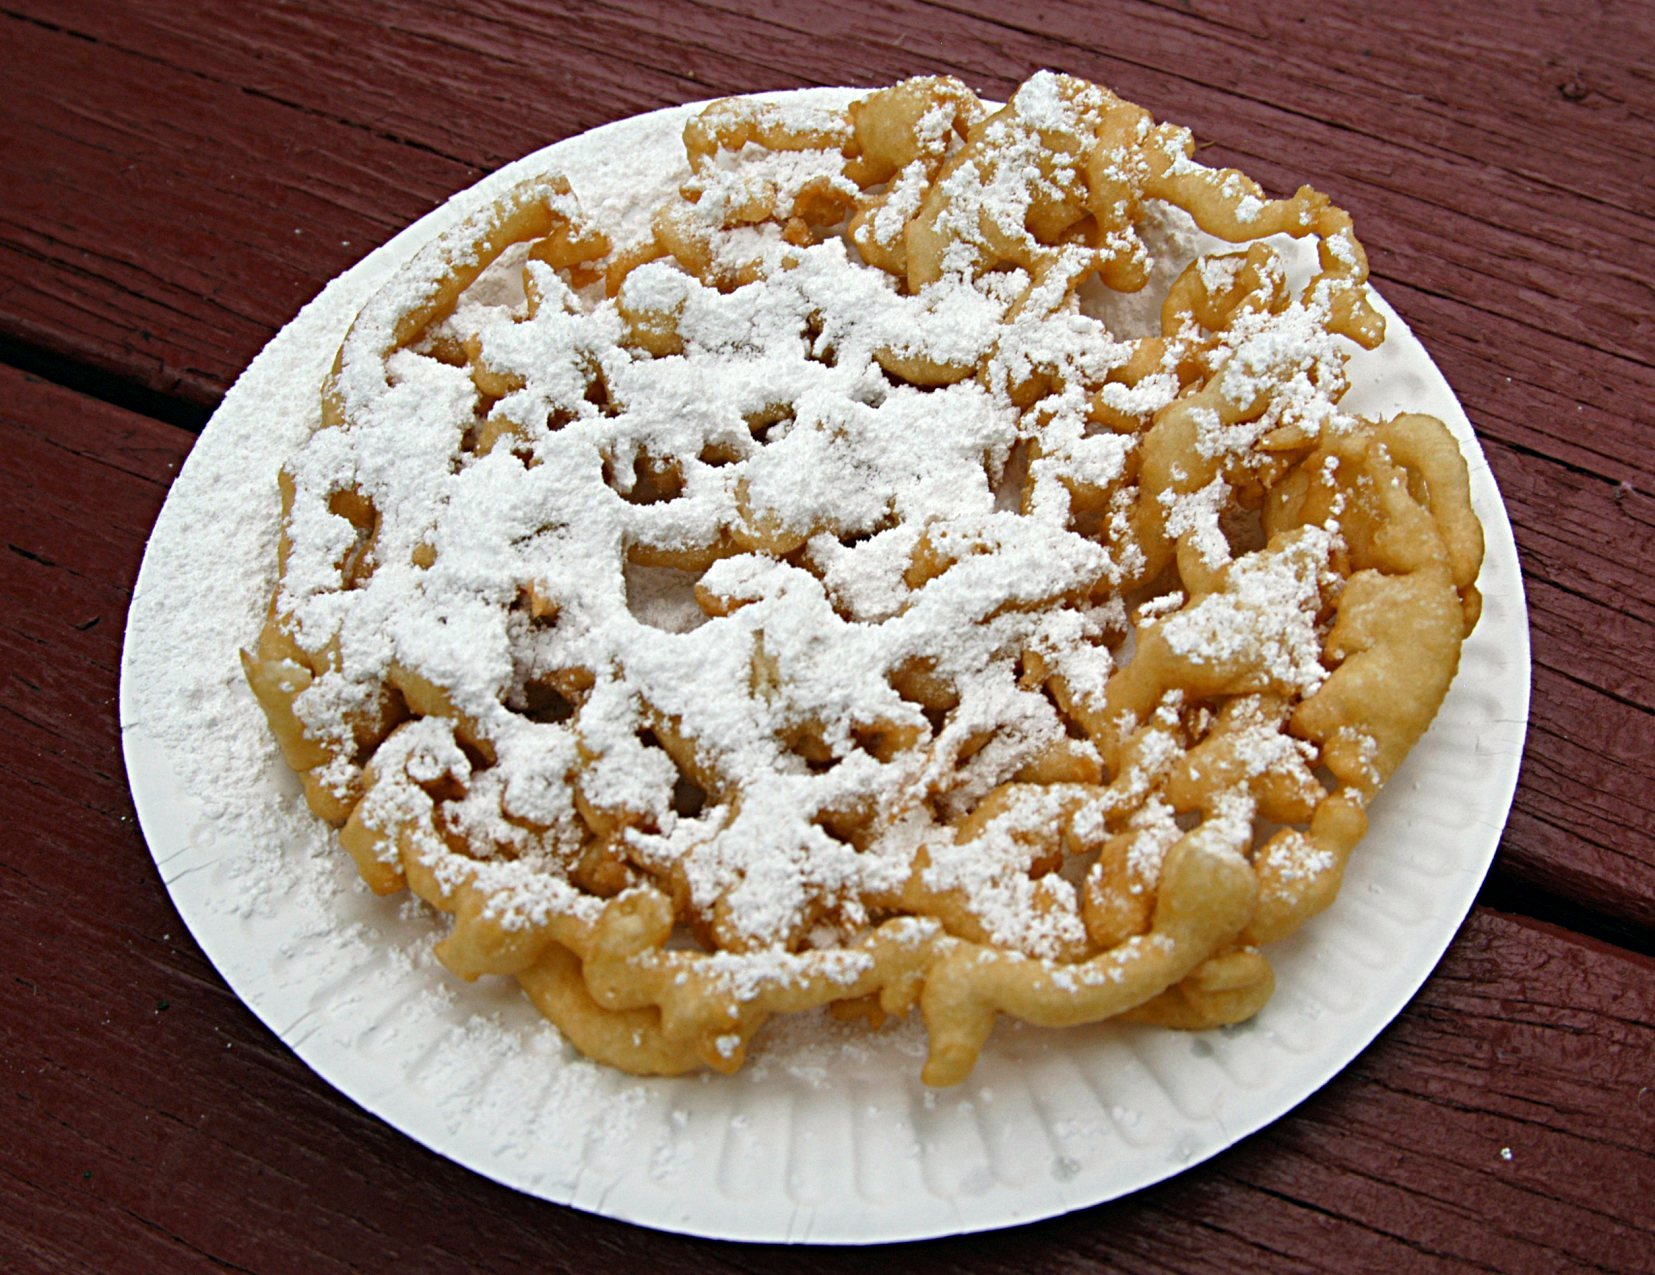 File:Funnel cake 20040821 172200 1.1655x1275.jpg - Wikipedia